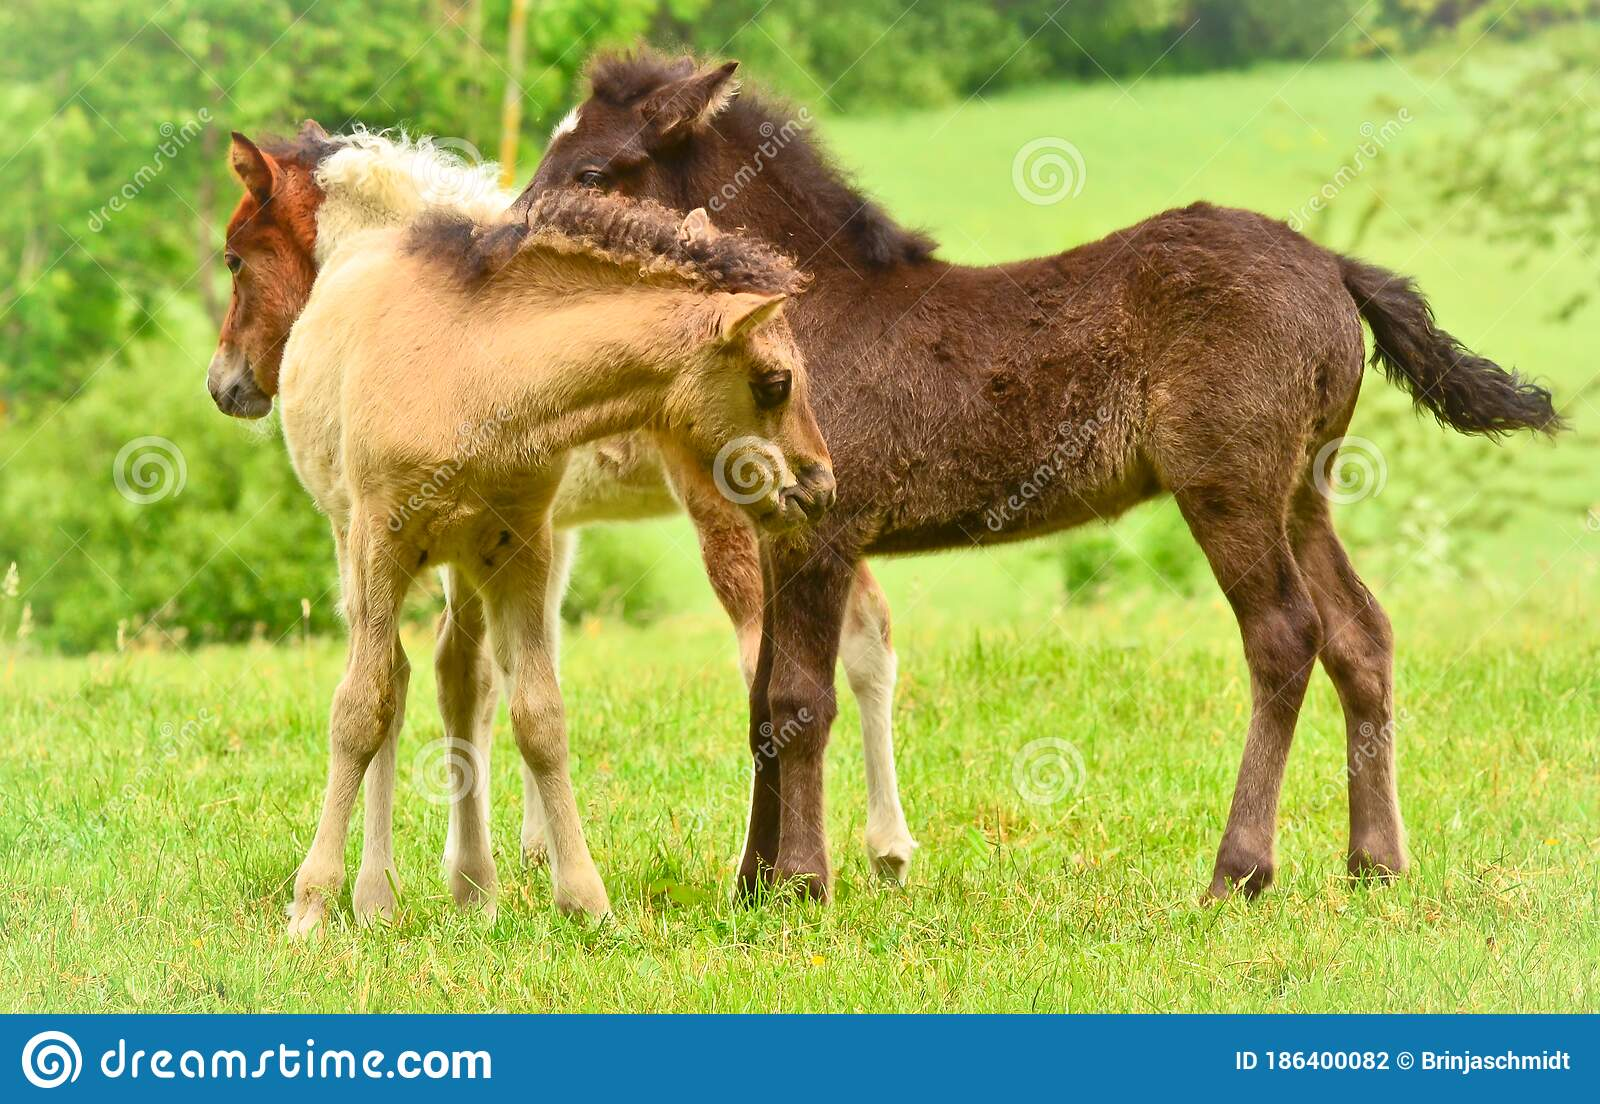 Three Pretty And Cute Foals A Black One A Dun Horse And A Chestnut Icelandic Horse Foals Are Playing And Grooming Together I Stock Photo Image Of Breed Herd 186400082